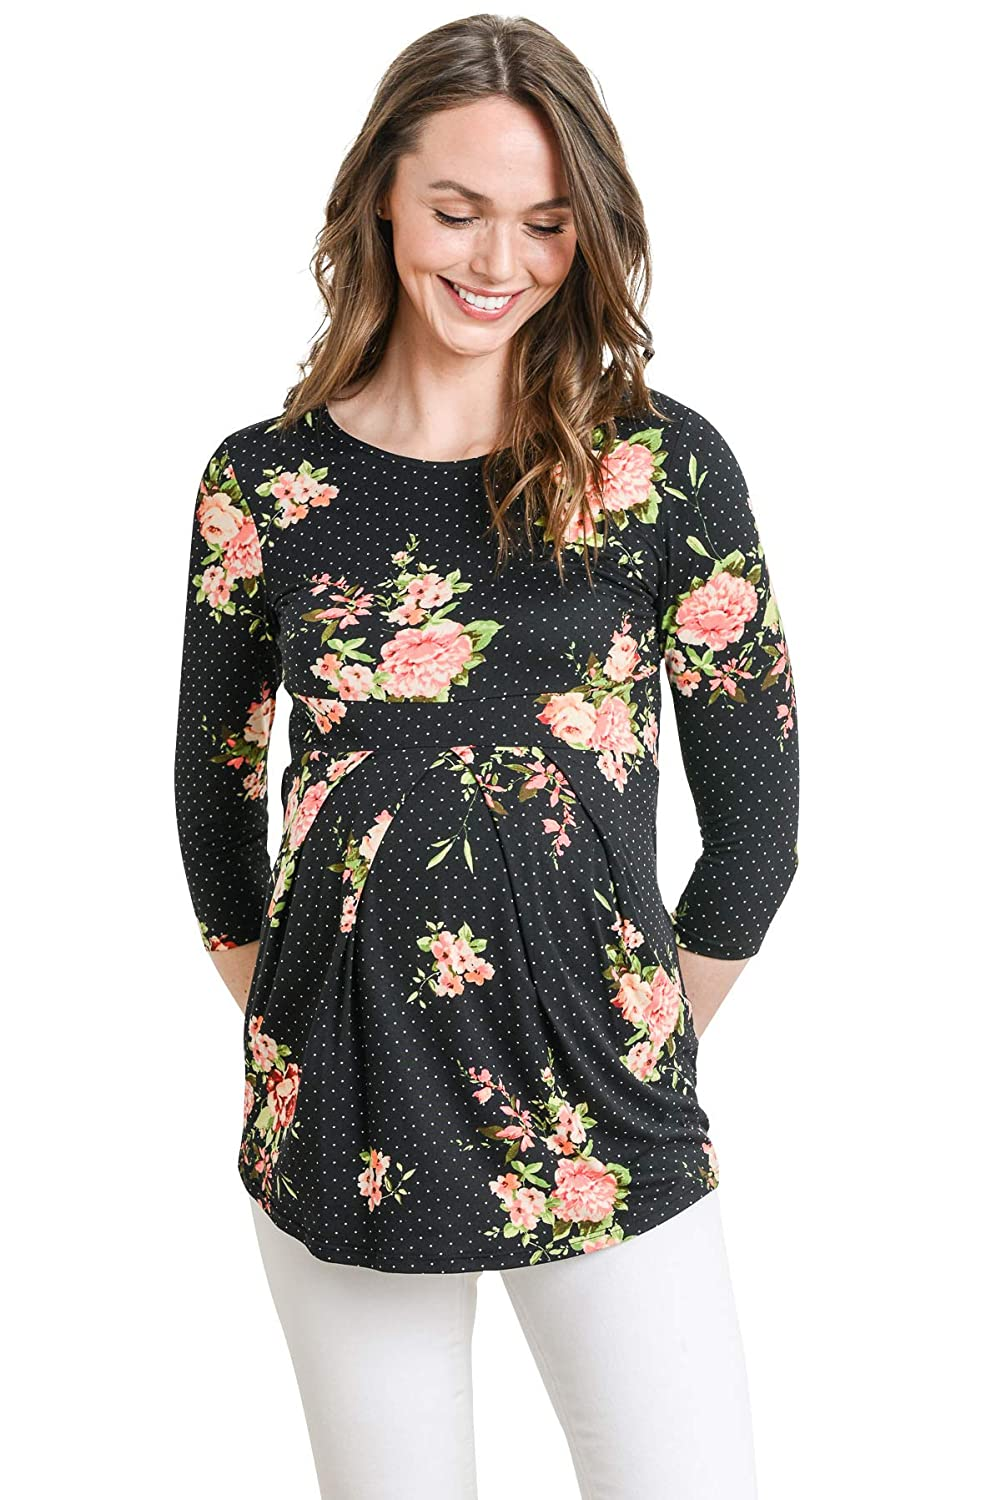 101a2bcd17367 Soft and Strechable and stylish comfortable maternity Elbow sleeve Blouse  perfect for ...